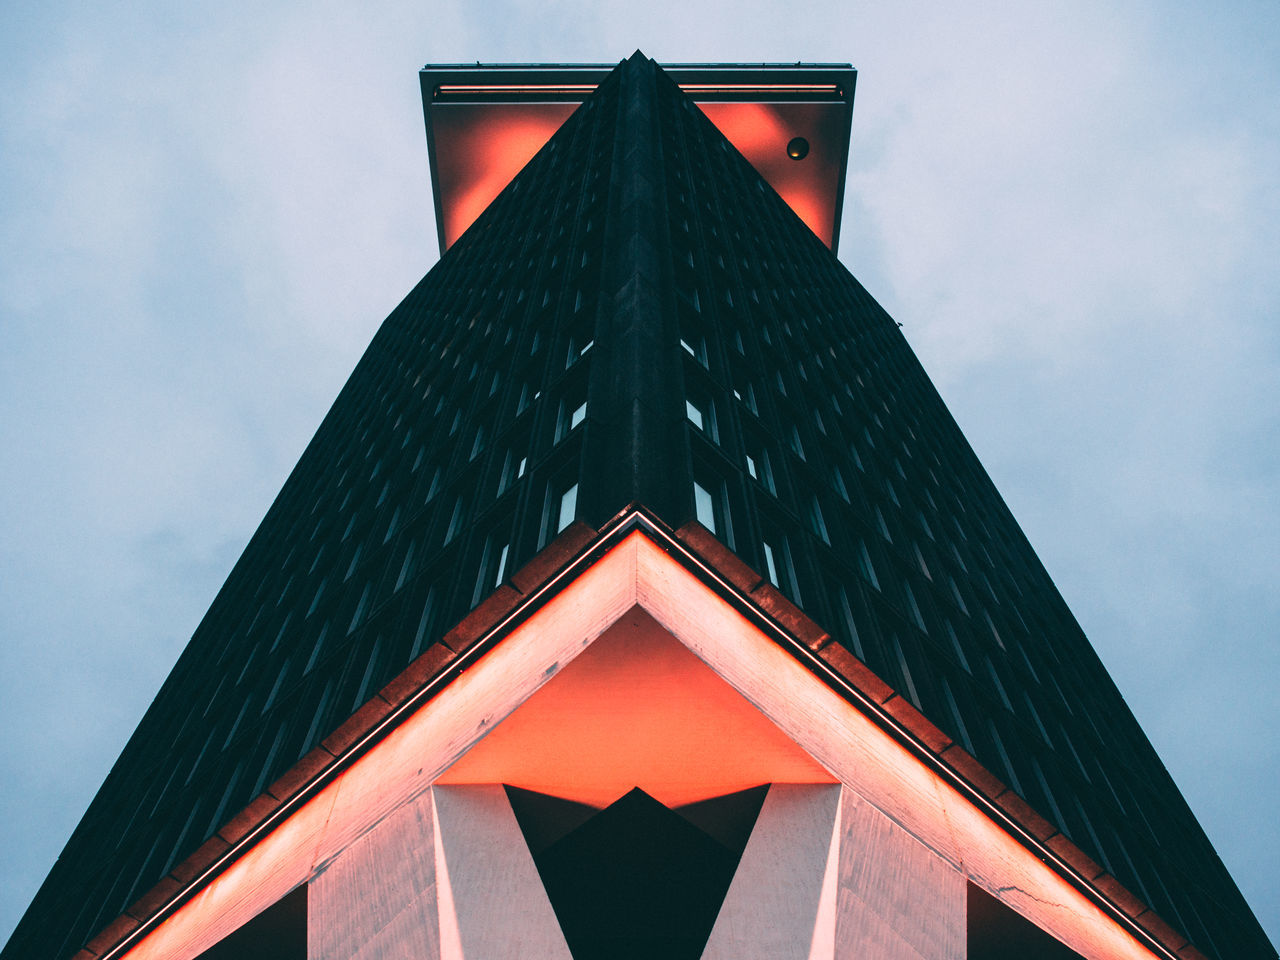 triangle shape, built structure, low angle view, architecture, shape, sky, no people, building exterior, modern, day, outdoors, close-up